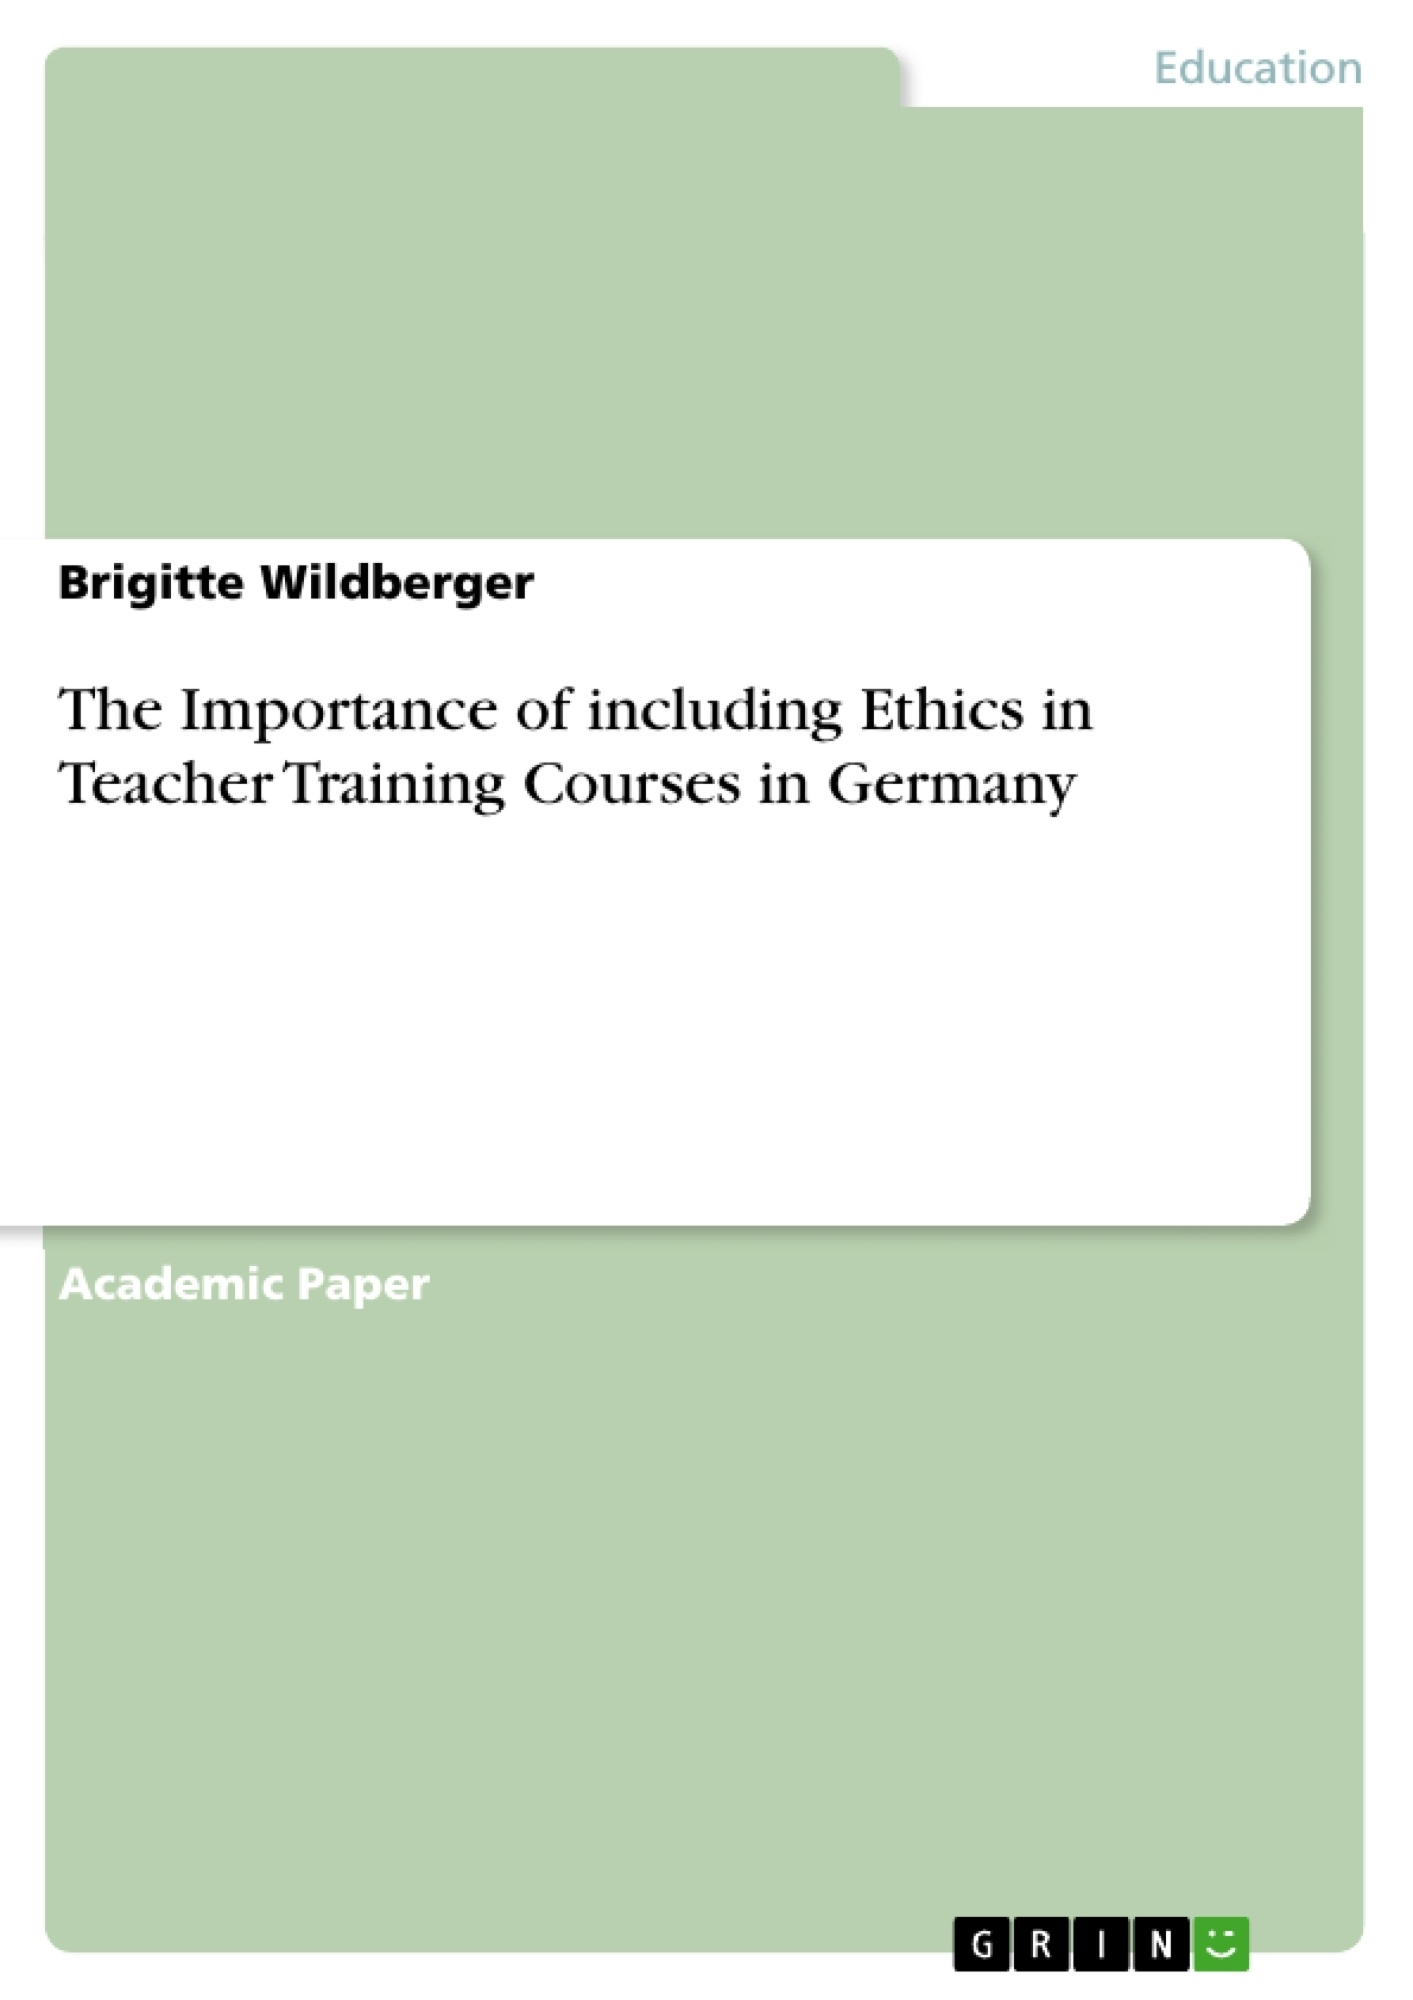 Title: The Importance of including Ethics in Teacher Training Courses in Germany